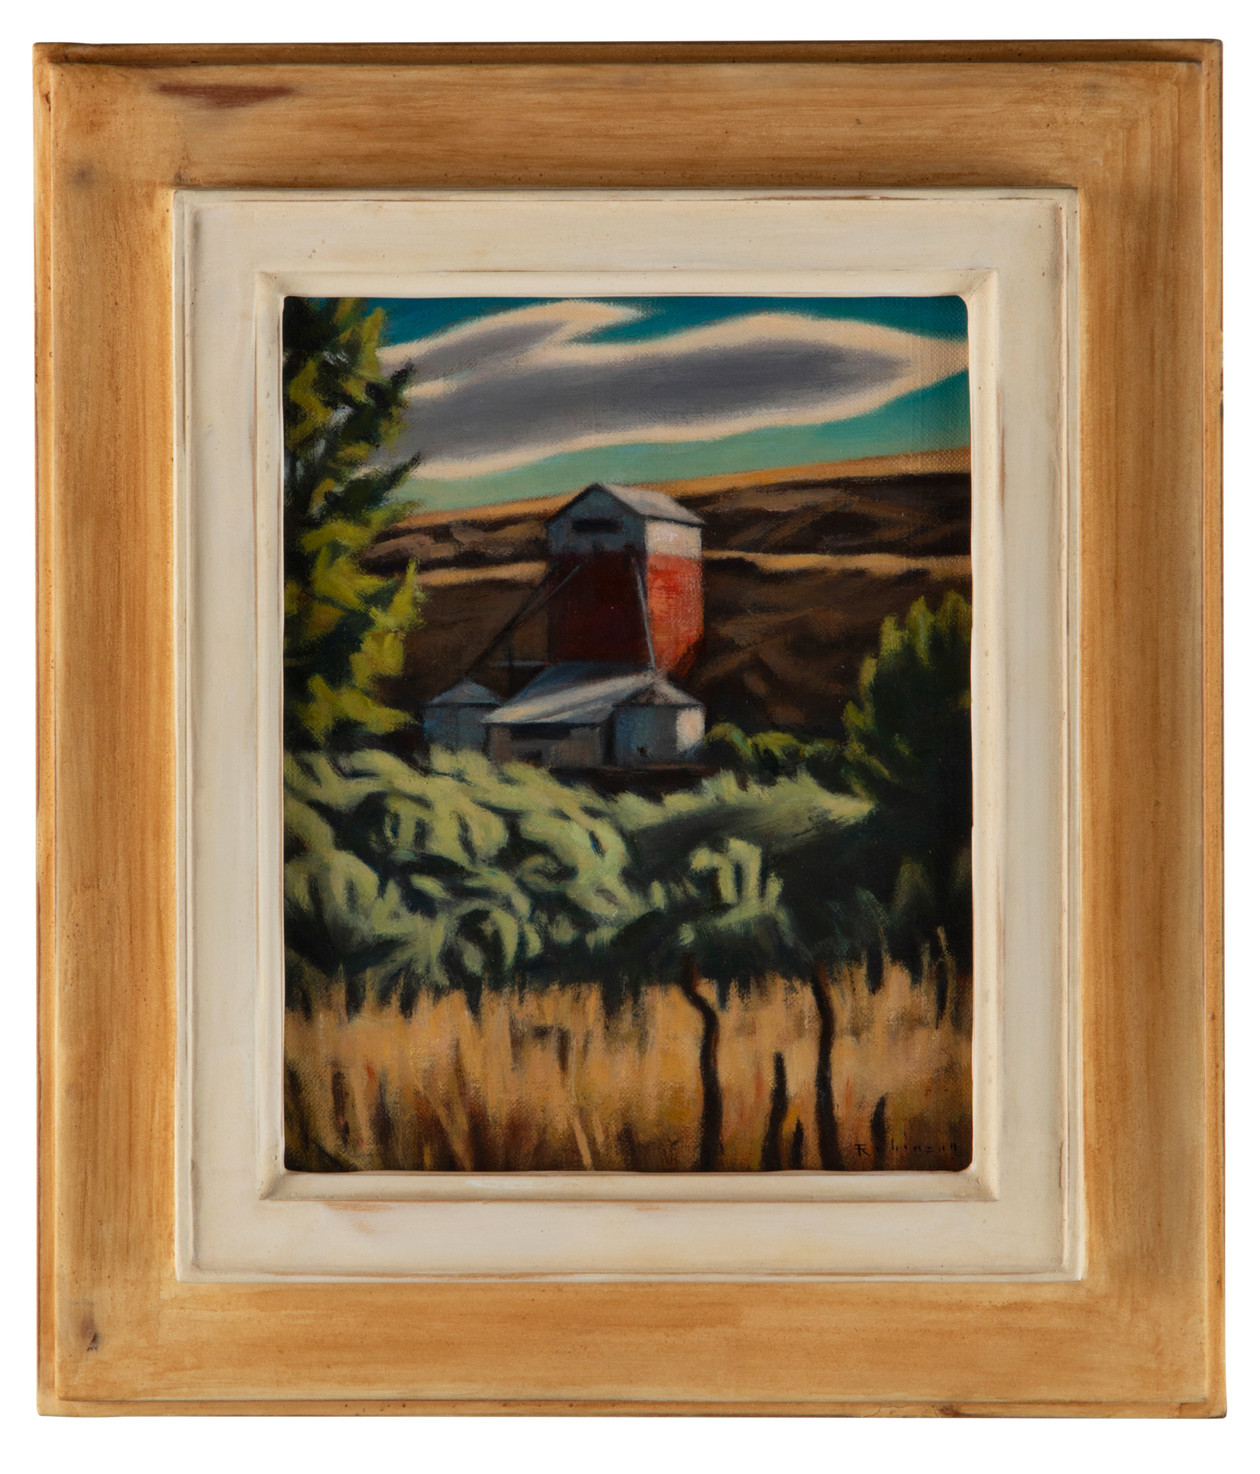 Willows and Granary (2021) by Daniel Robinson